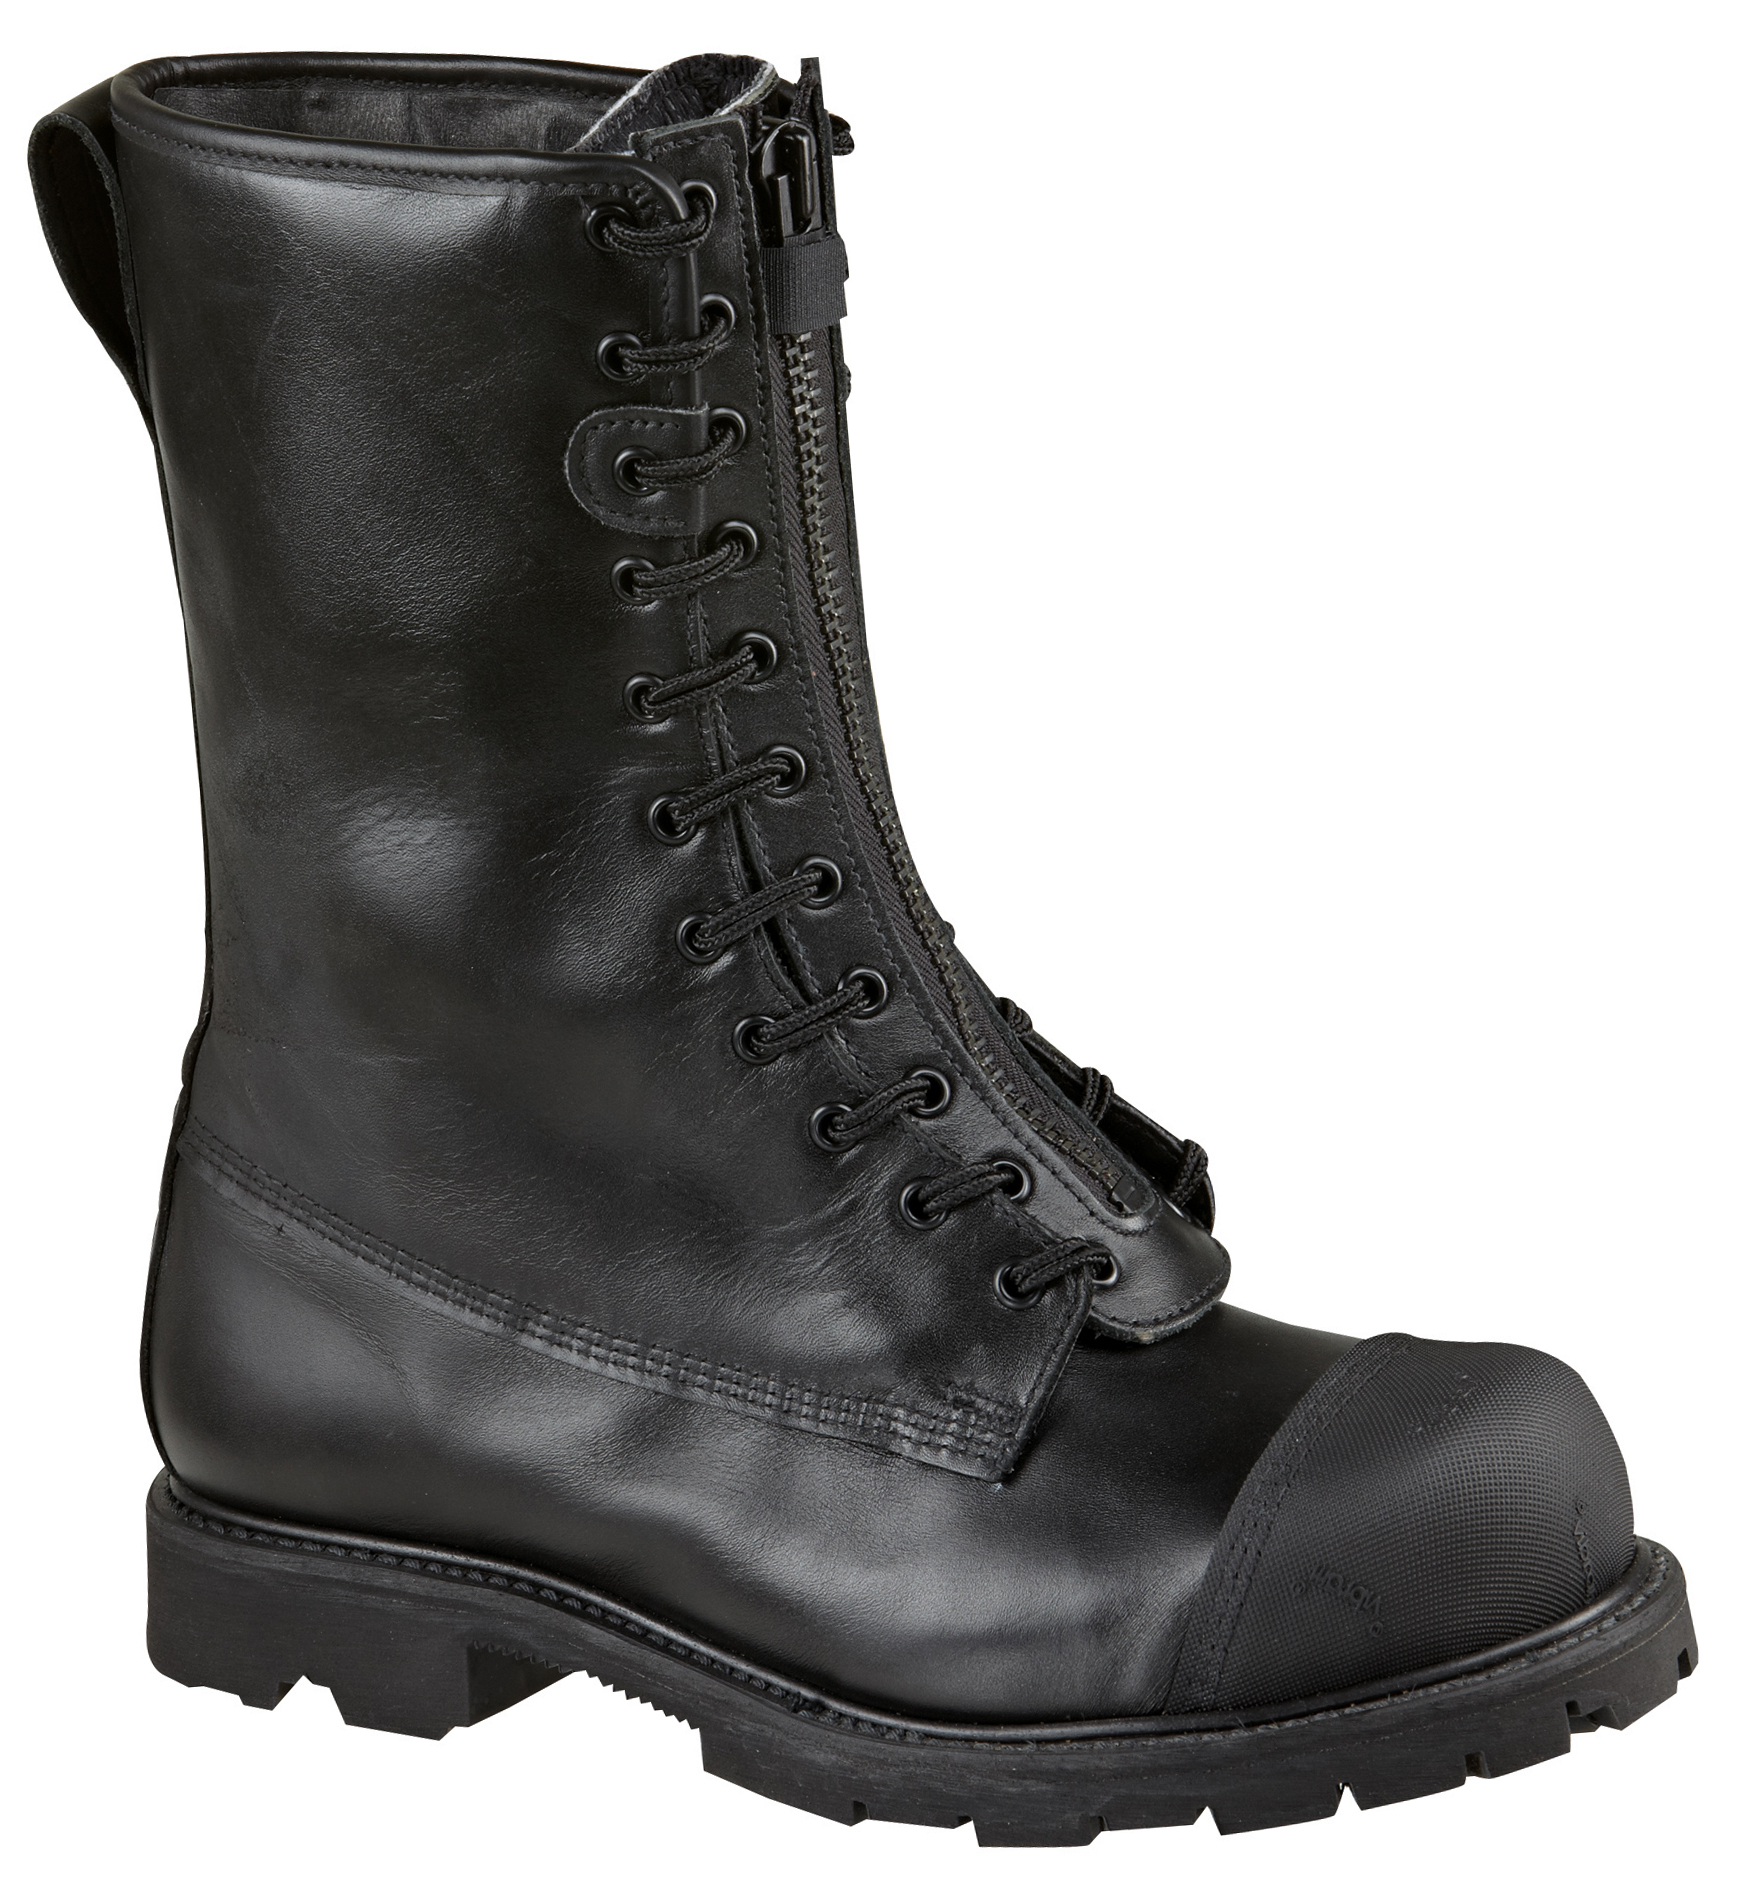 "Thorogood Men's Lace Up Zip Resistant Thorogood 10"" Wildland Fire Boot Black Leather Extra-Wide (EEE) 804-6391 at Sears.com"